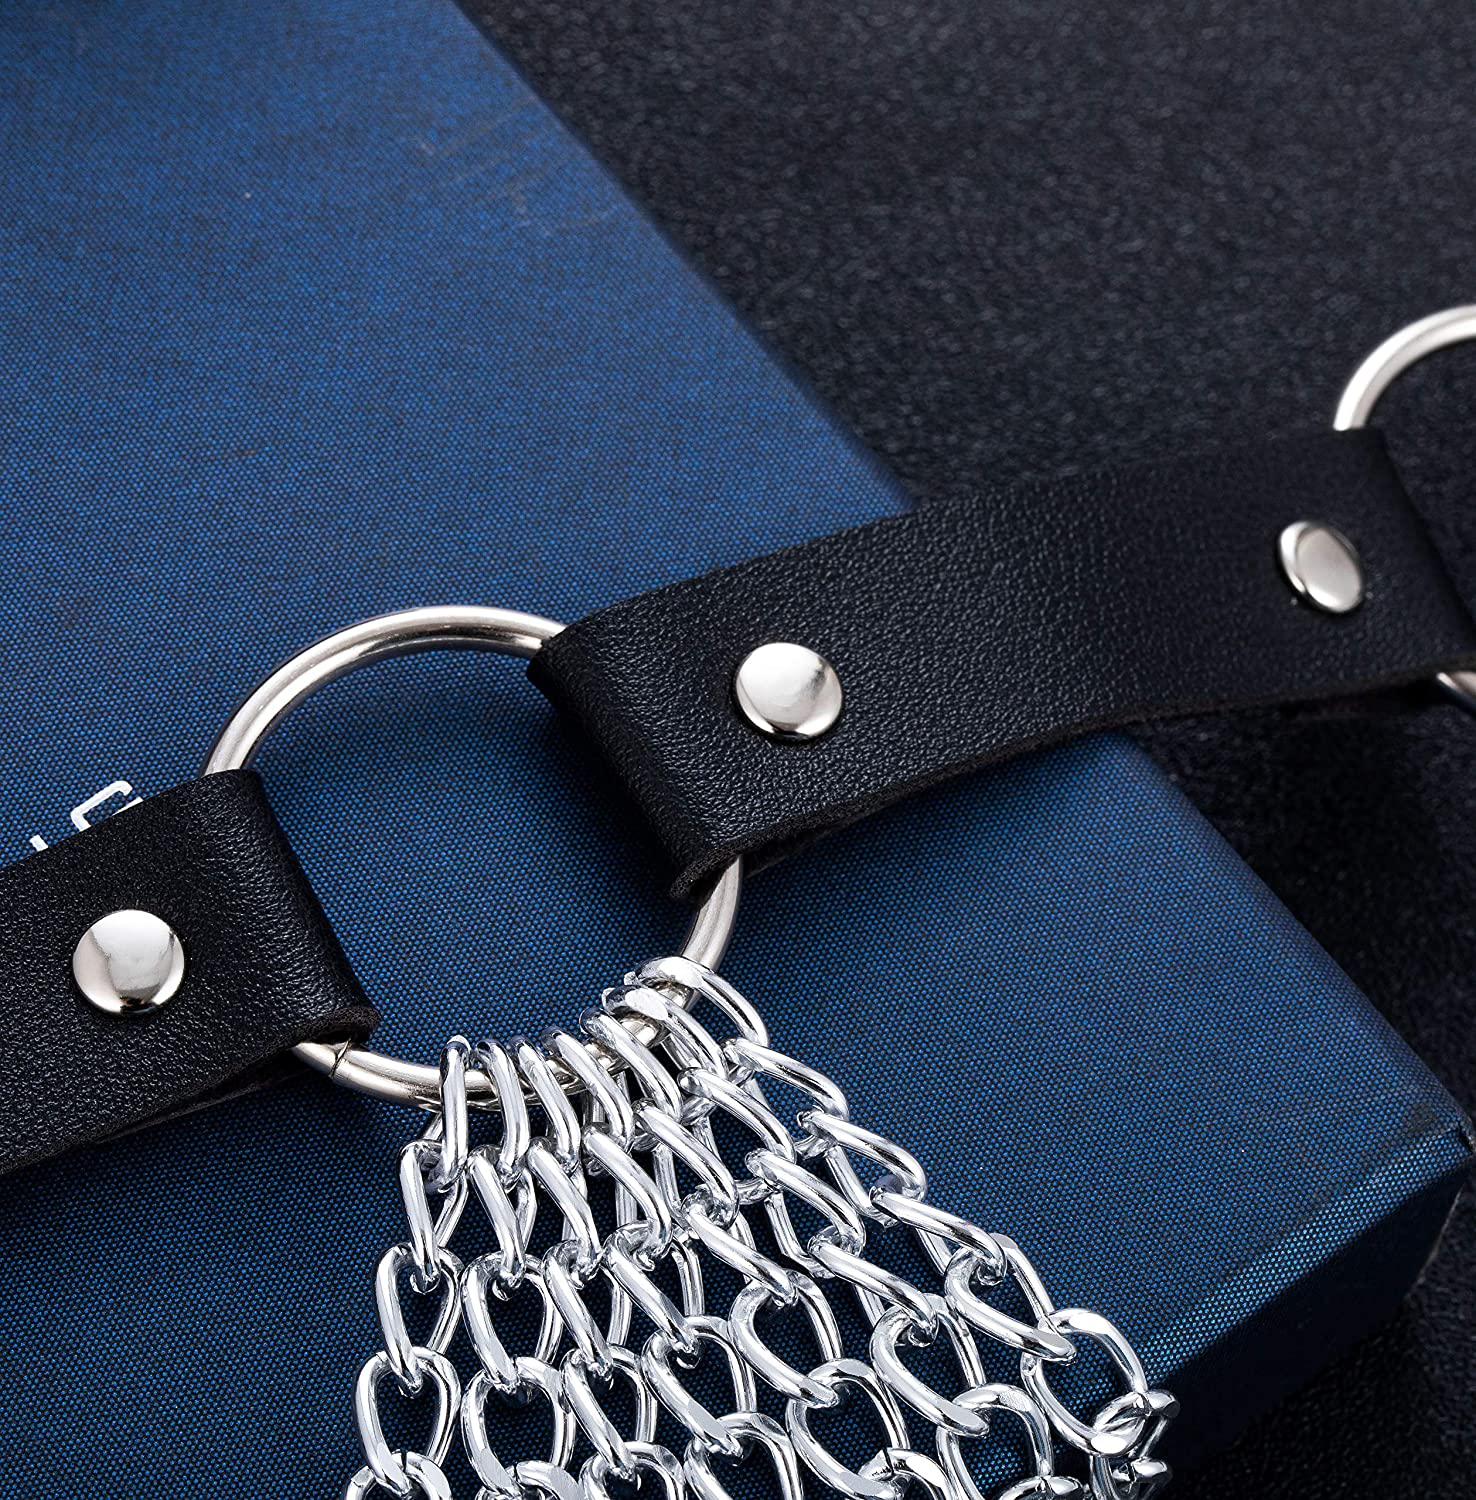 YOVORO 2PCS Punk Waist Belly Chain Belt for Women Leather Layered Body Chain Dance Pary Body Accessories Jewelry